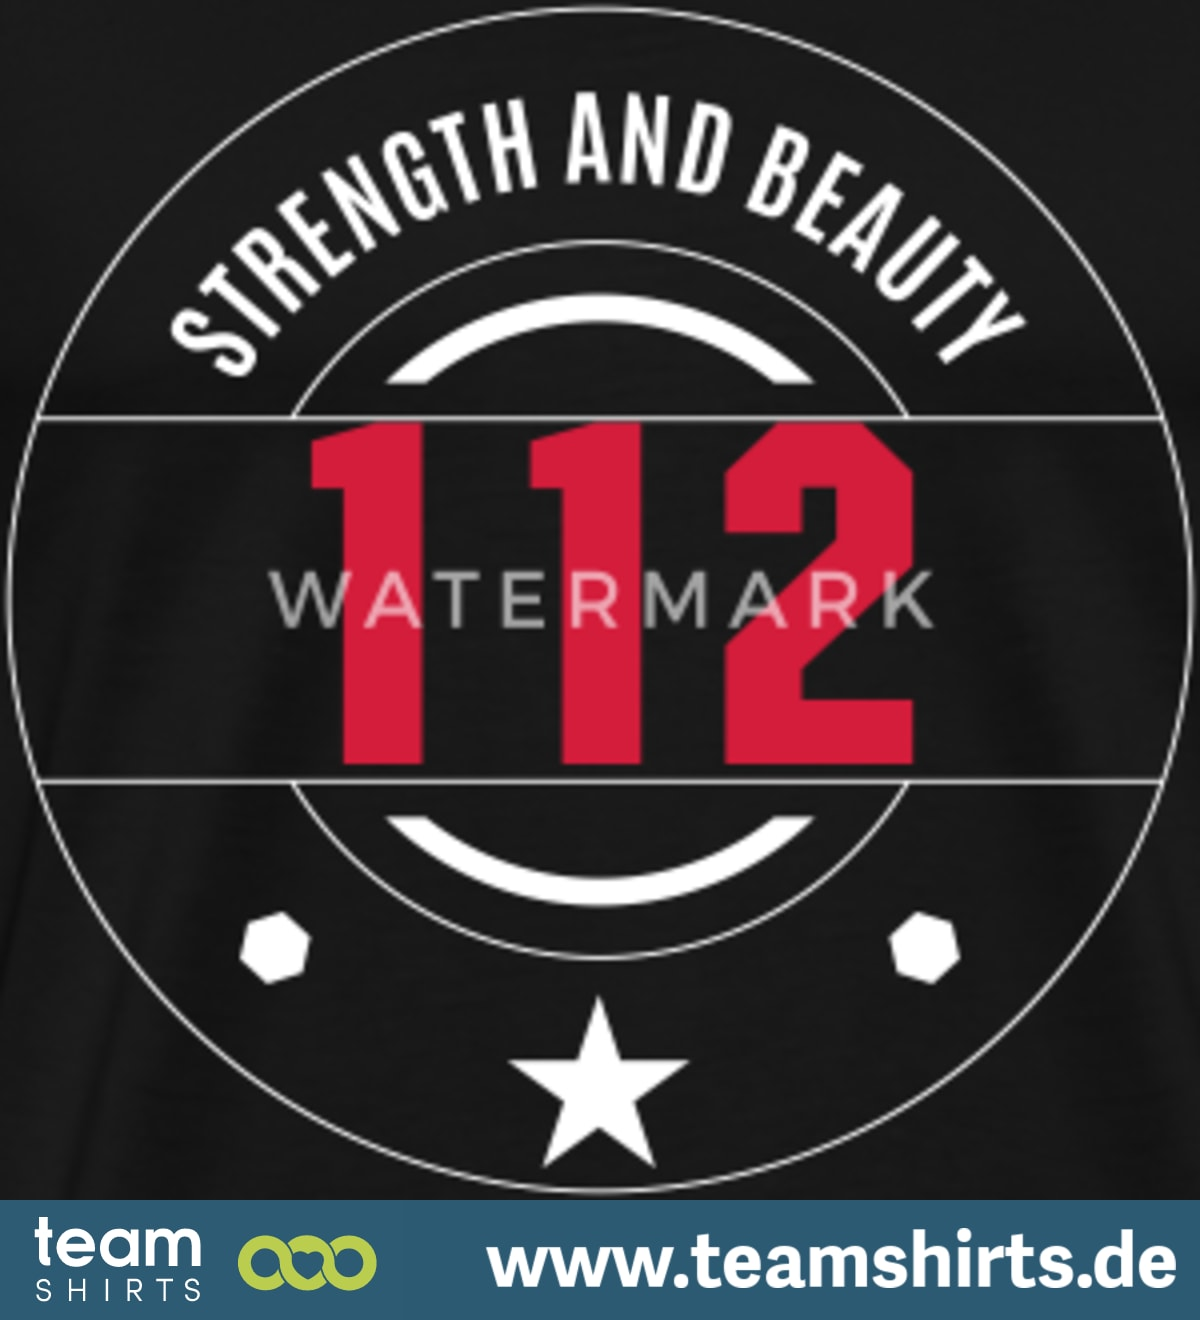 112 STRENGTH AND BEAUTY